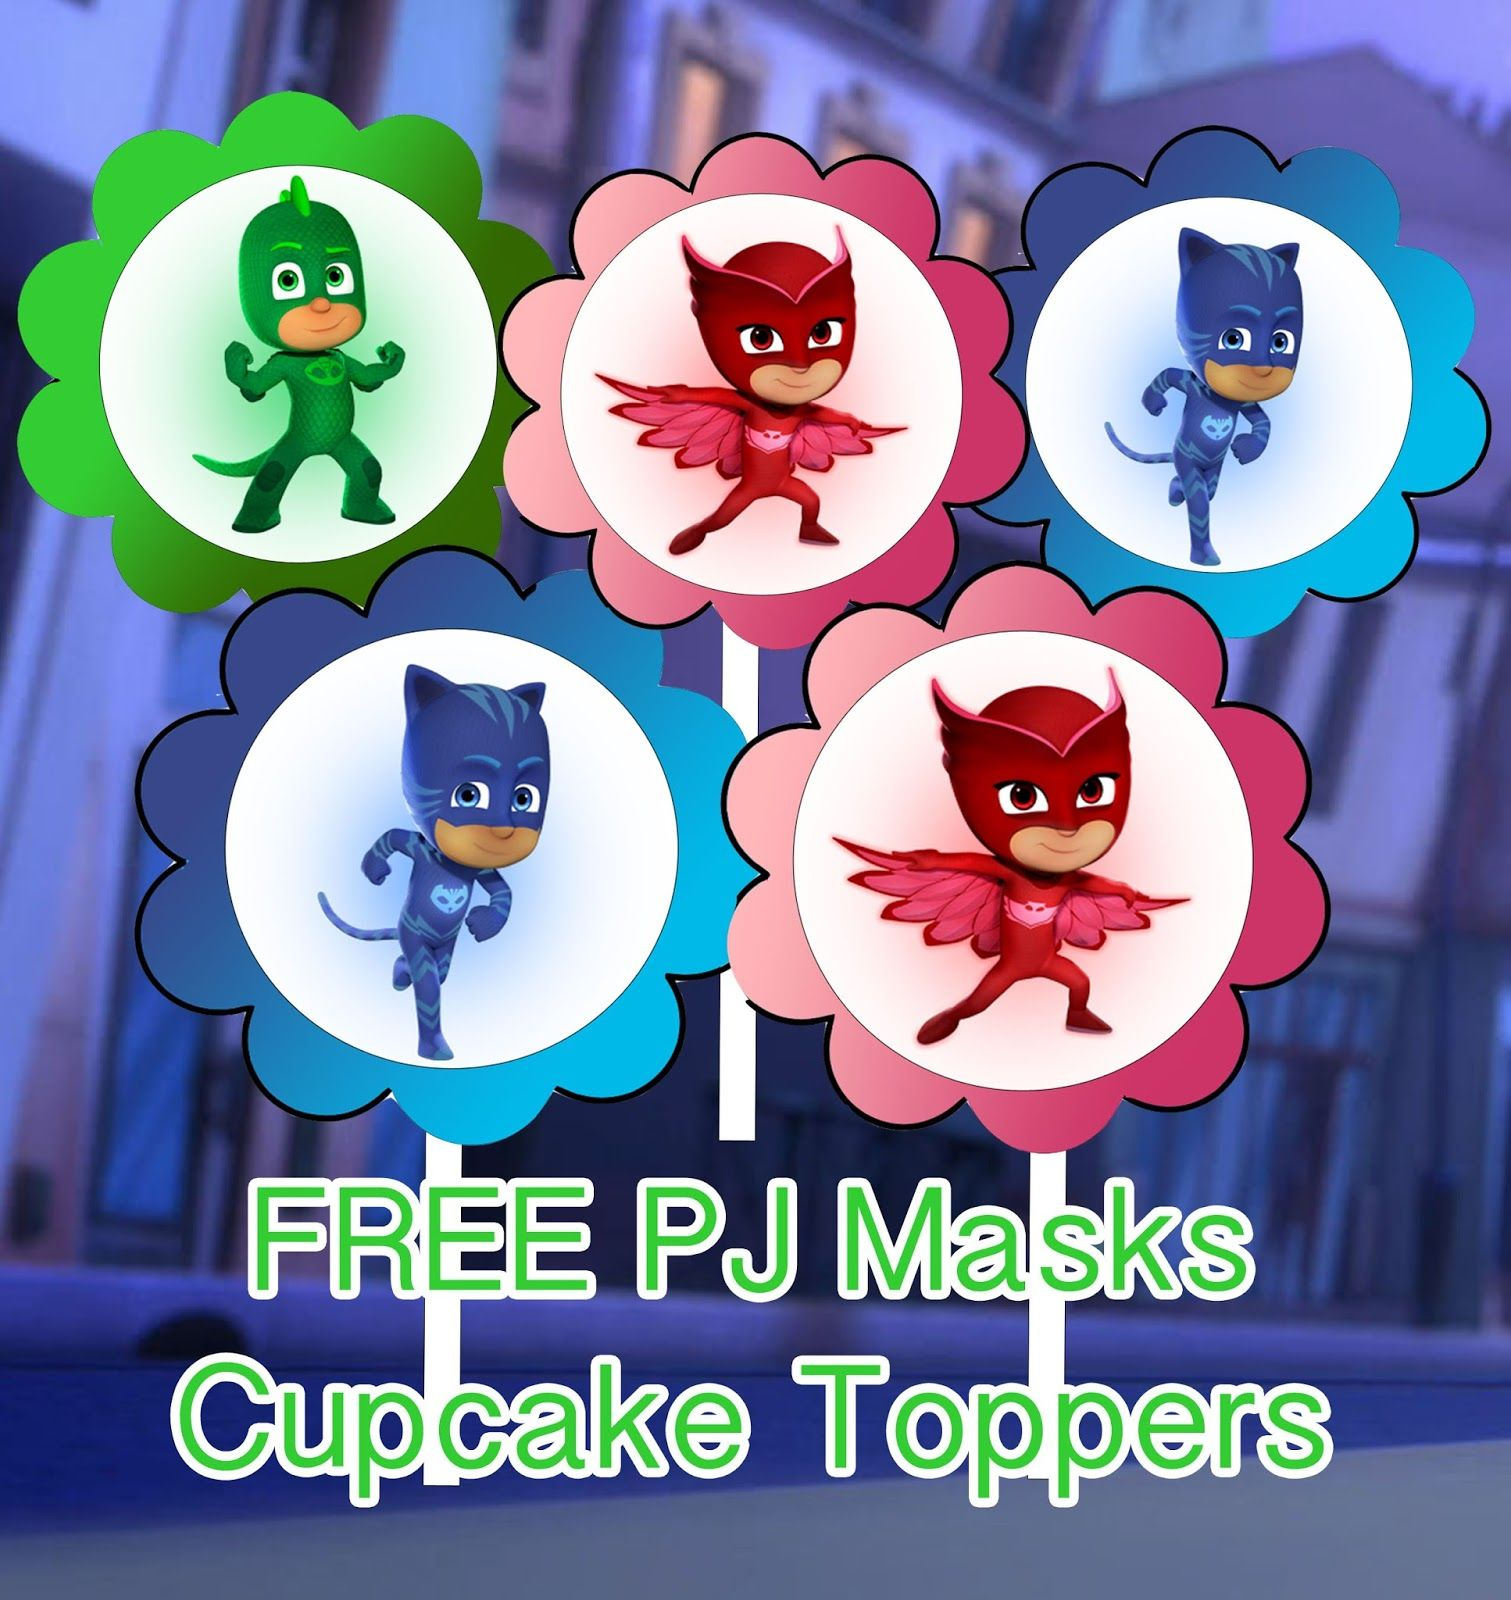 graphic regarding Pj Mask Printable titled PJ Masks Birthday Celebration Printable Data files Cupcake Toppers